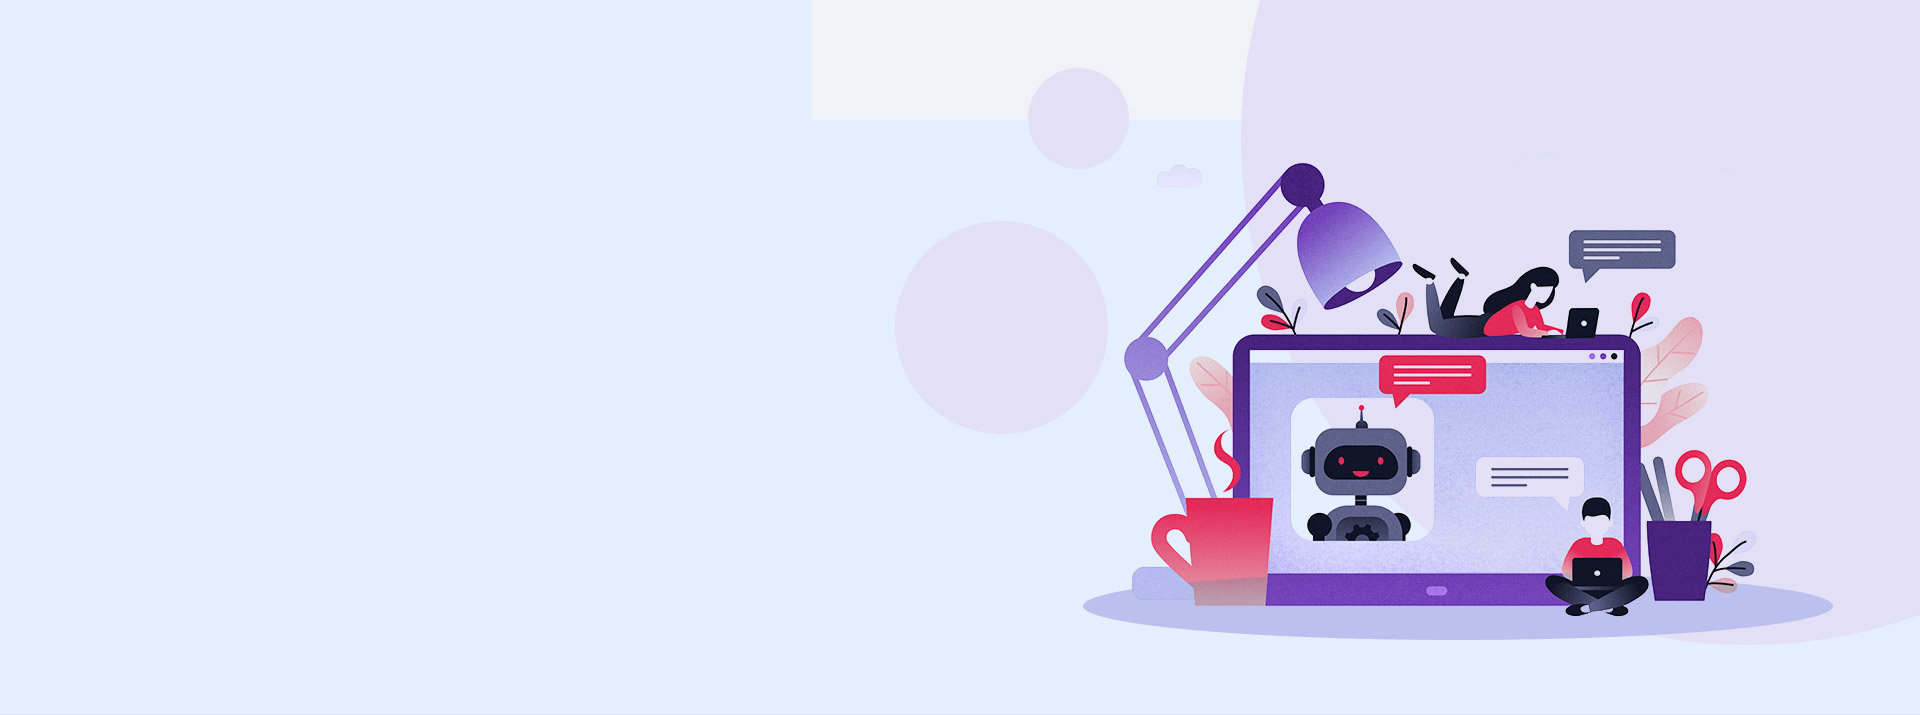 Best Custom AI Chatbot For Website | NCRTS